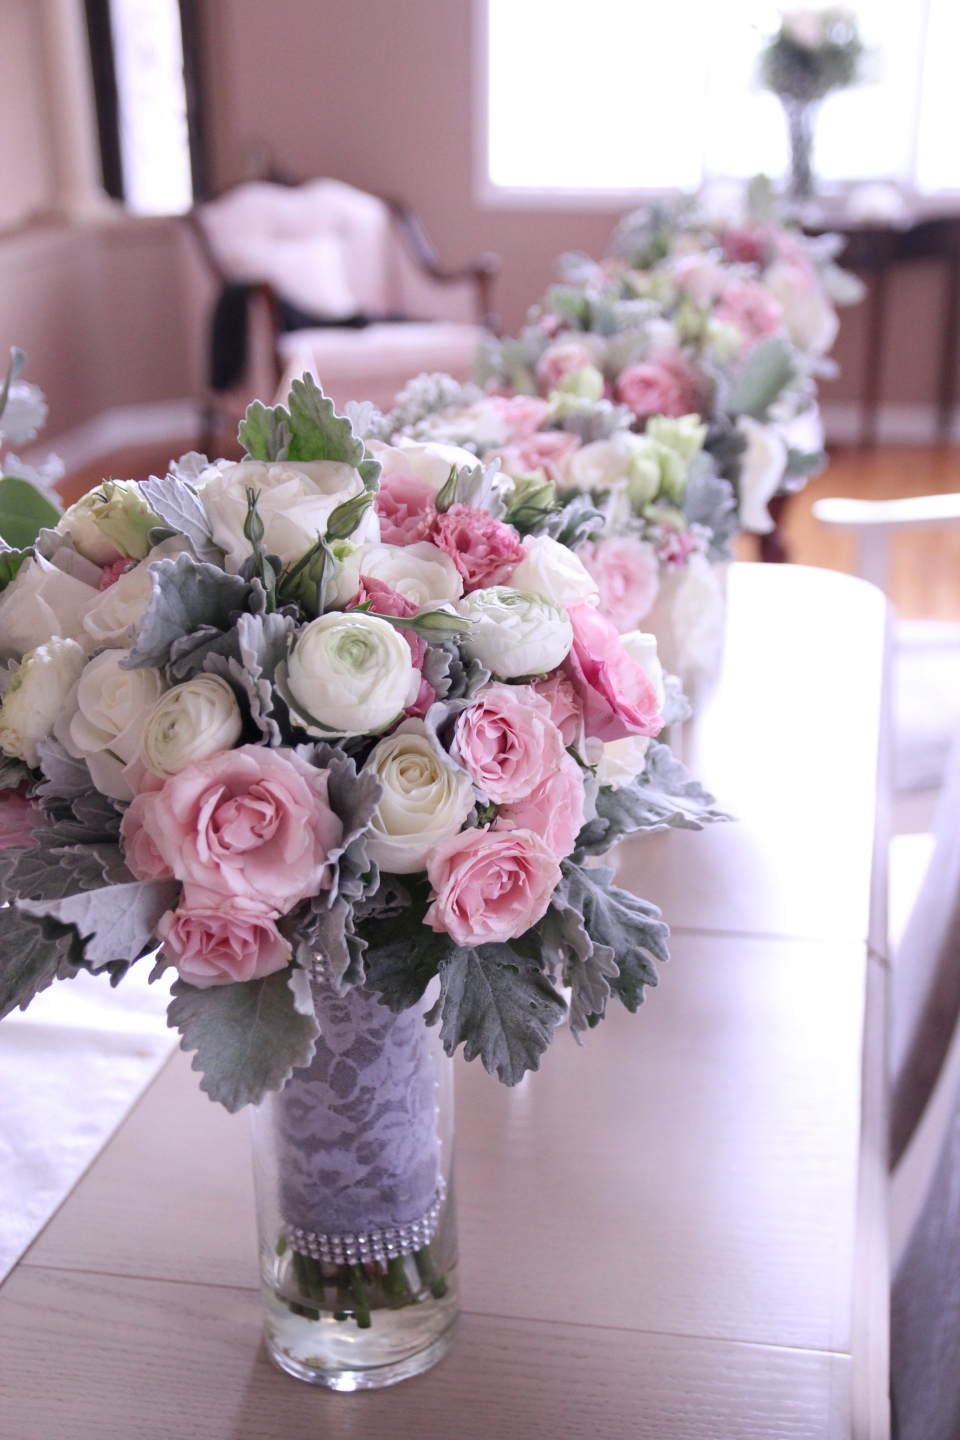 Romantic bouquet of roses, spray roses, lisianthus, ranunculus and dusty miller